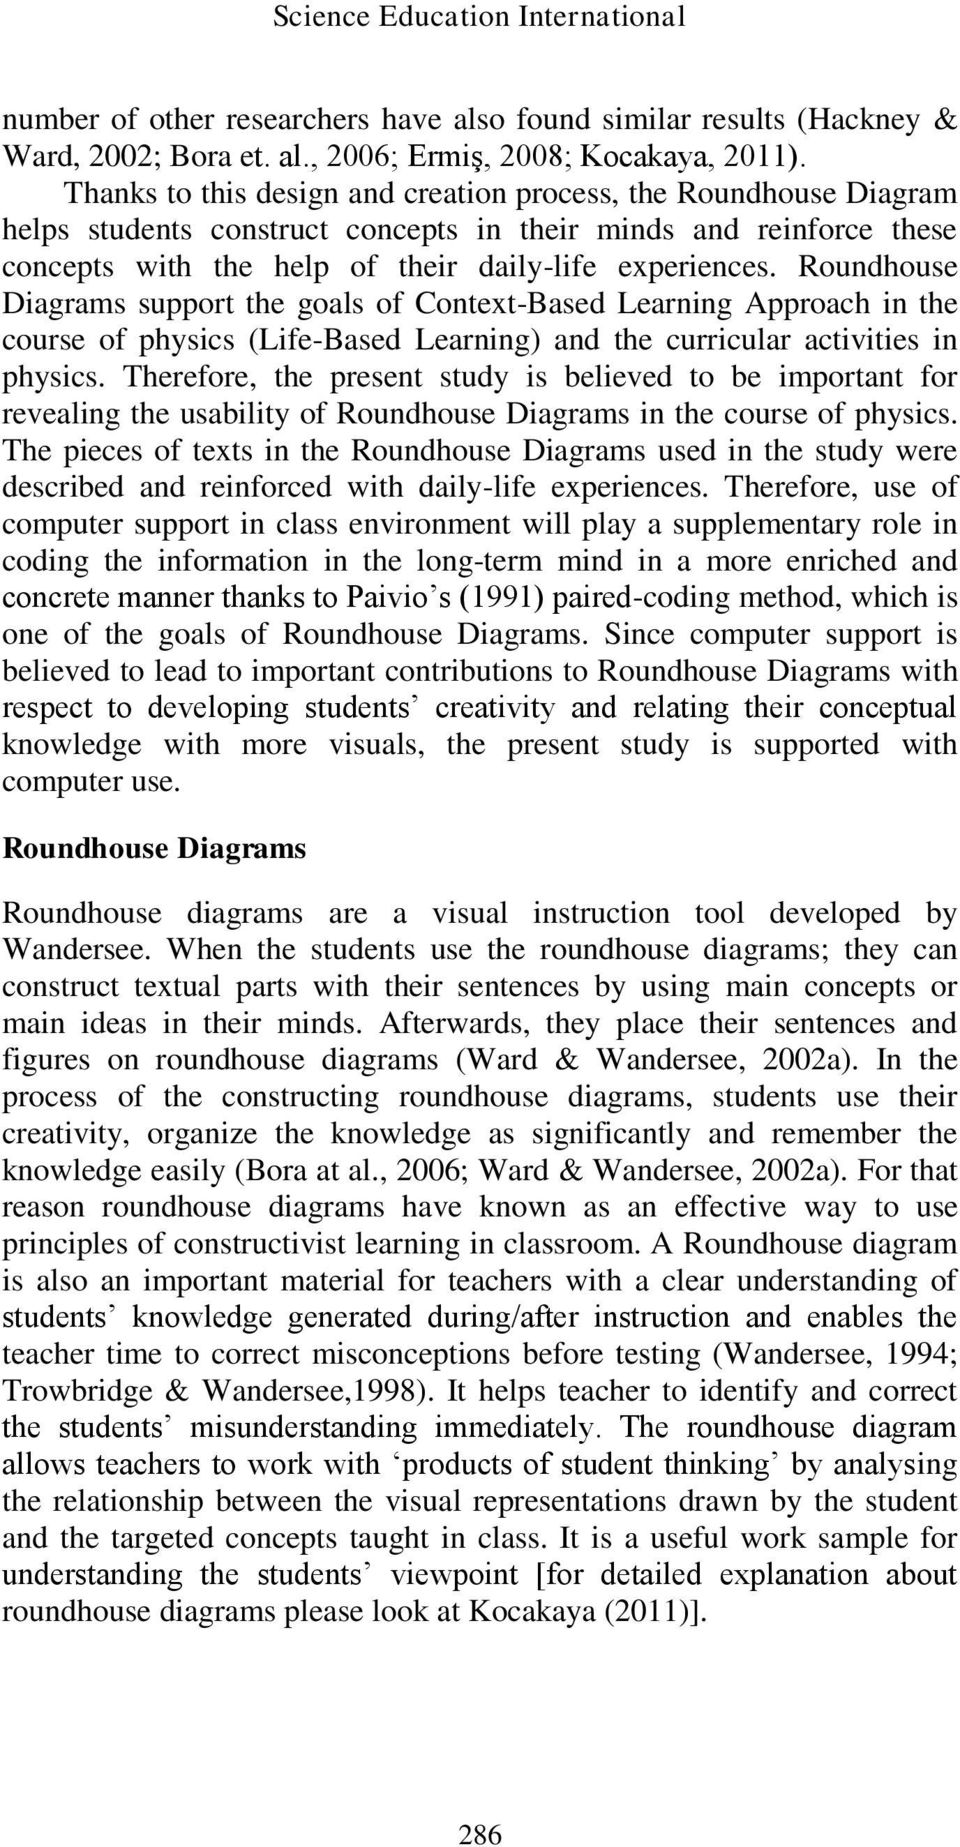 Roundhouse Diagrams support the goals of Context-Based Learning Approach in the course of physics (Life-Based Learning) and the curricular activities in physics.